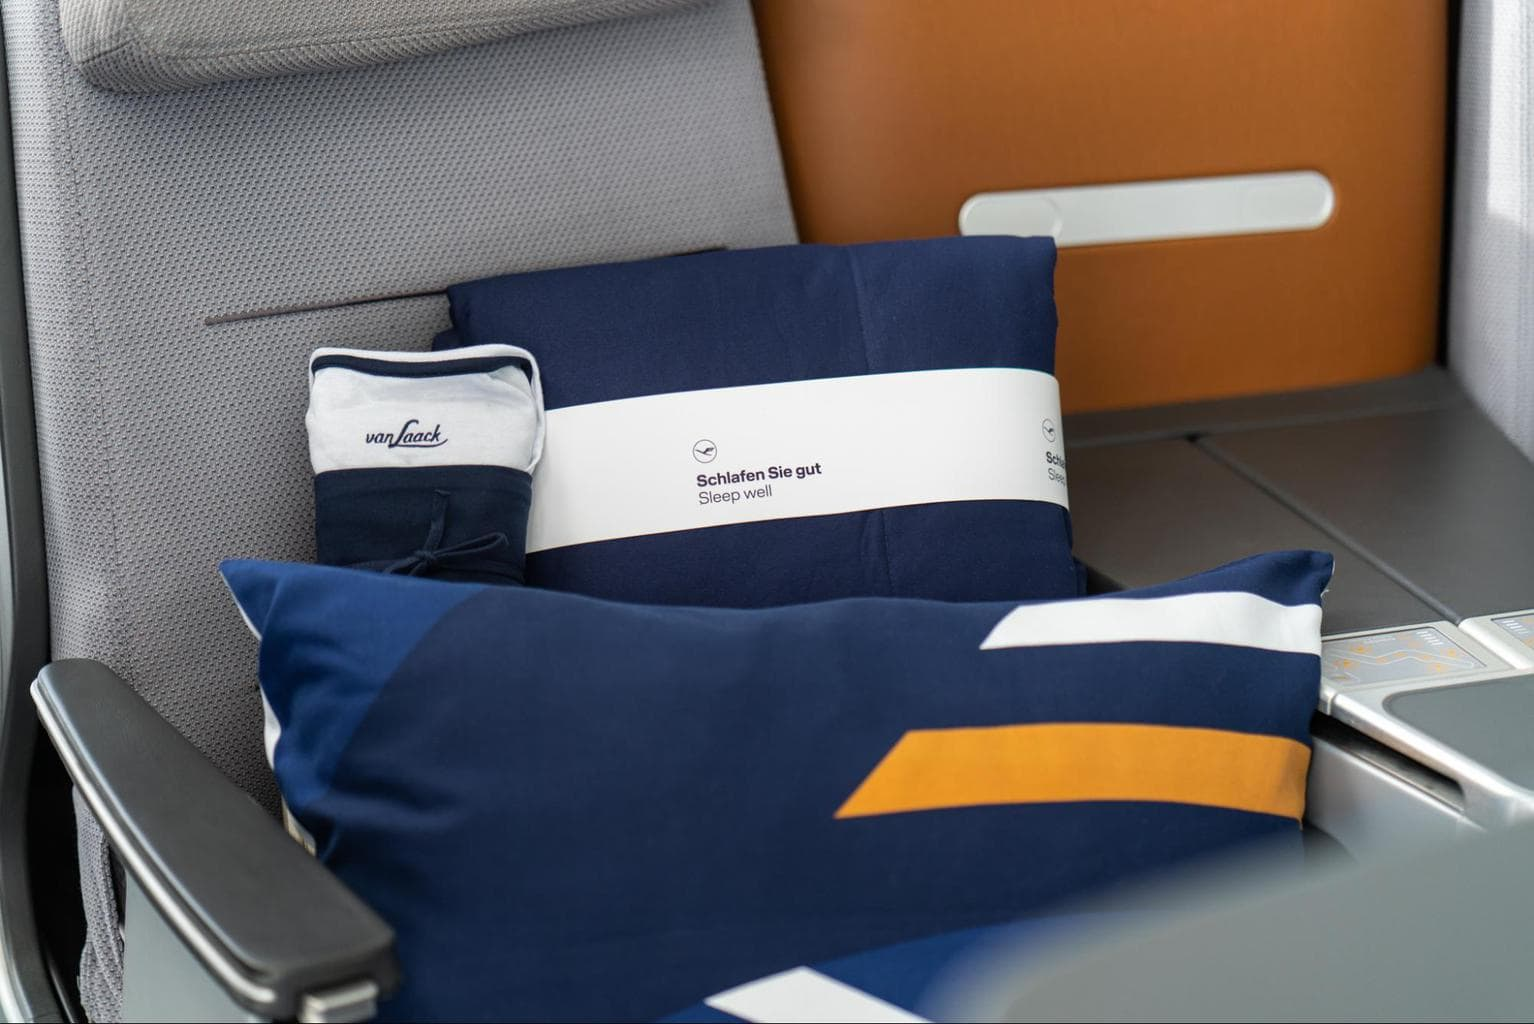 Lufthansa Dream Collection pillow, duvet and pyjamas